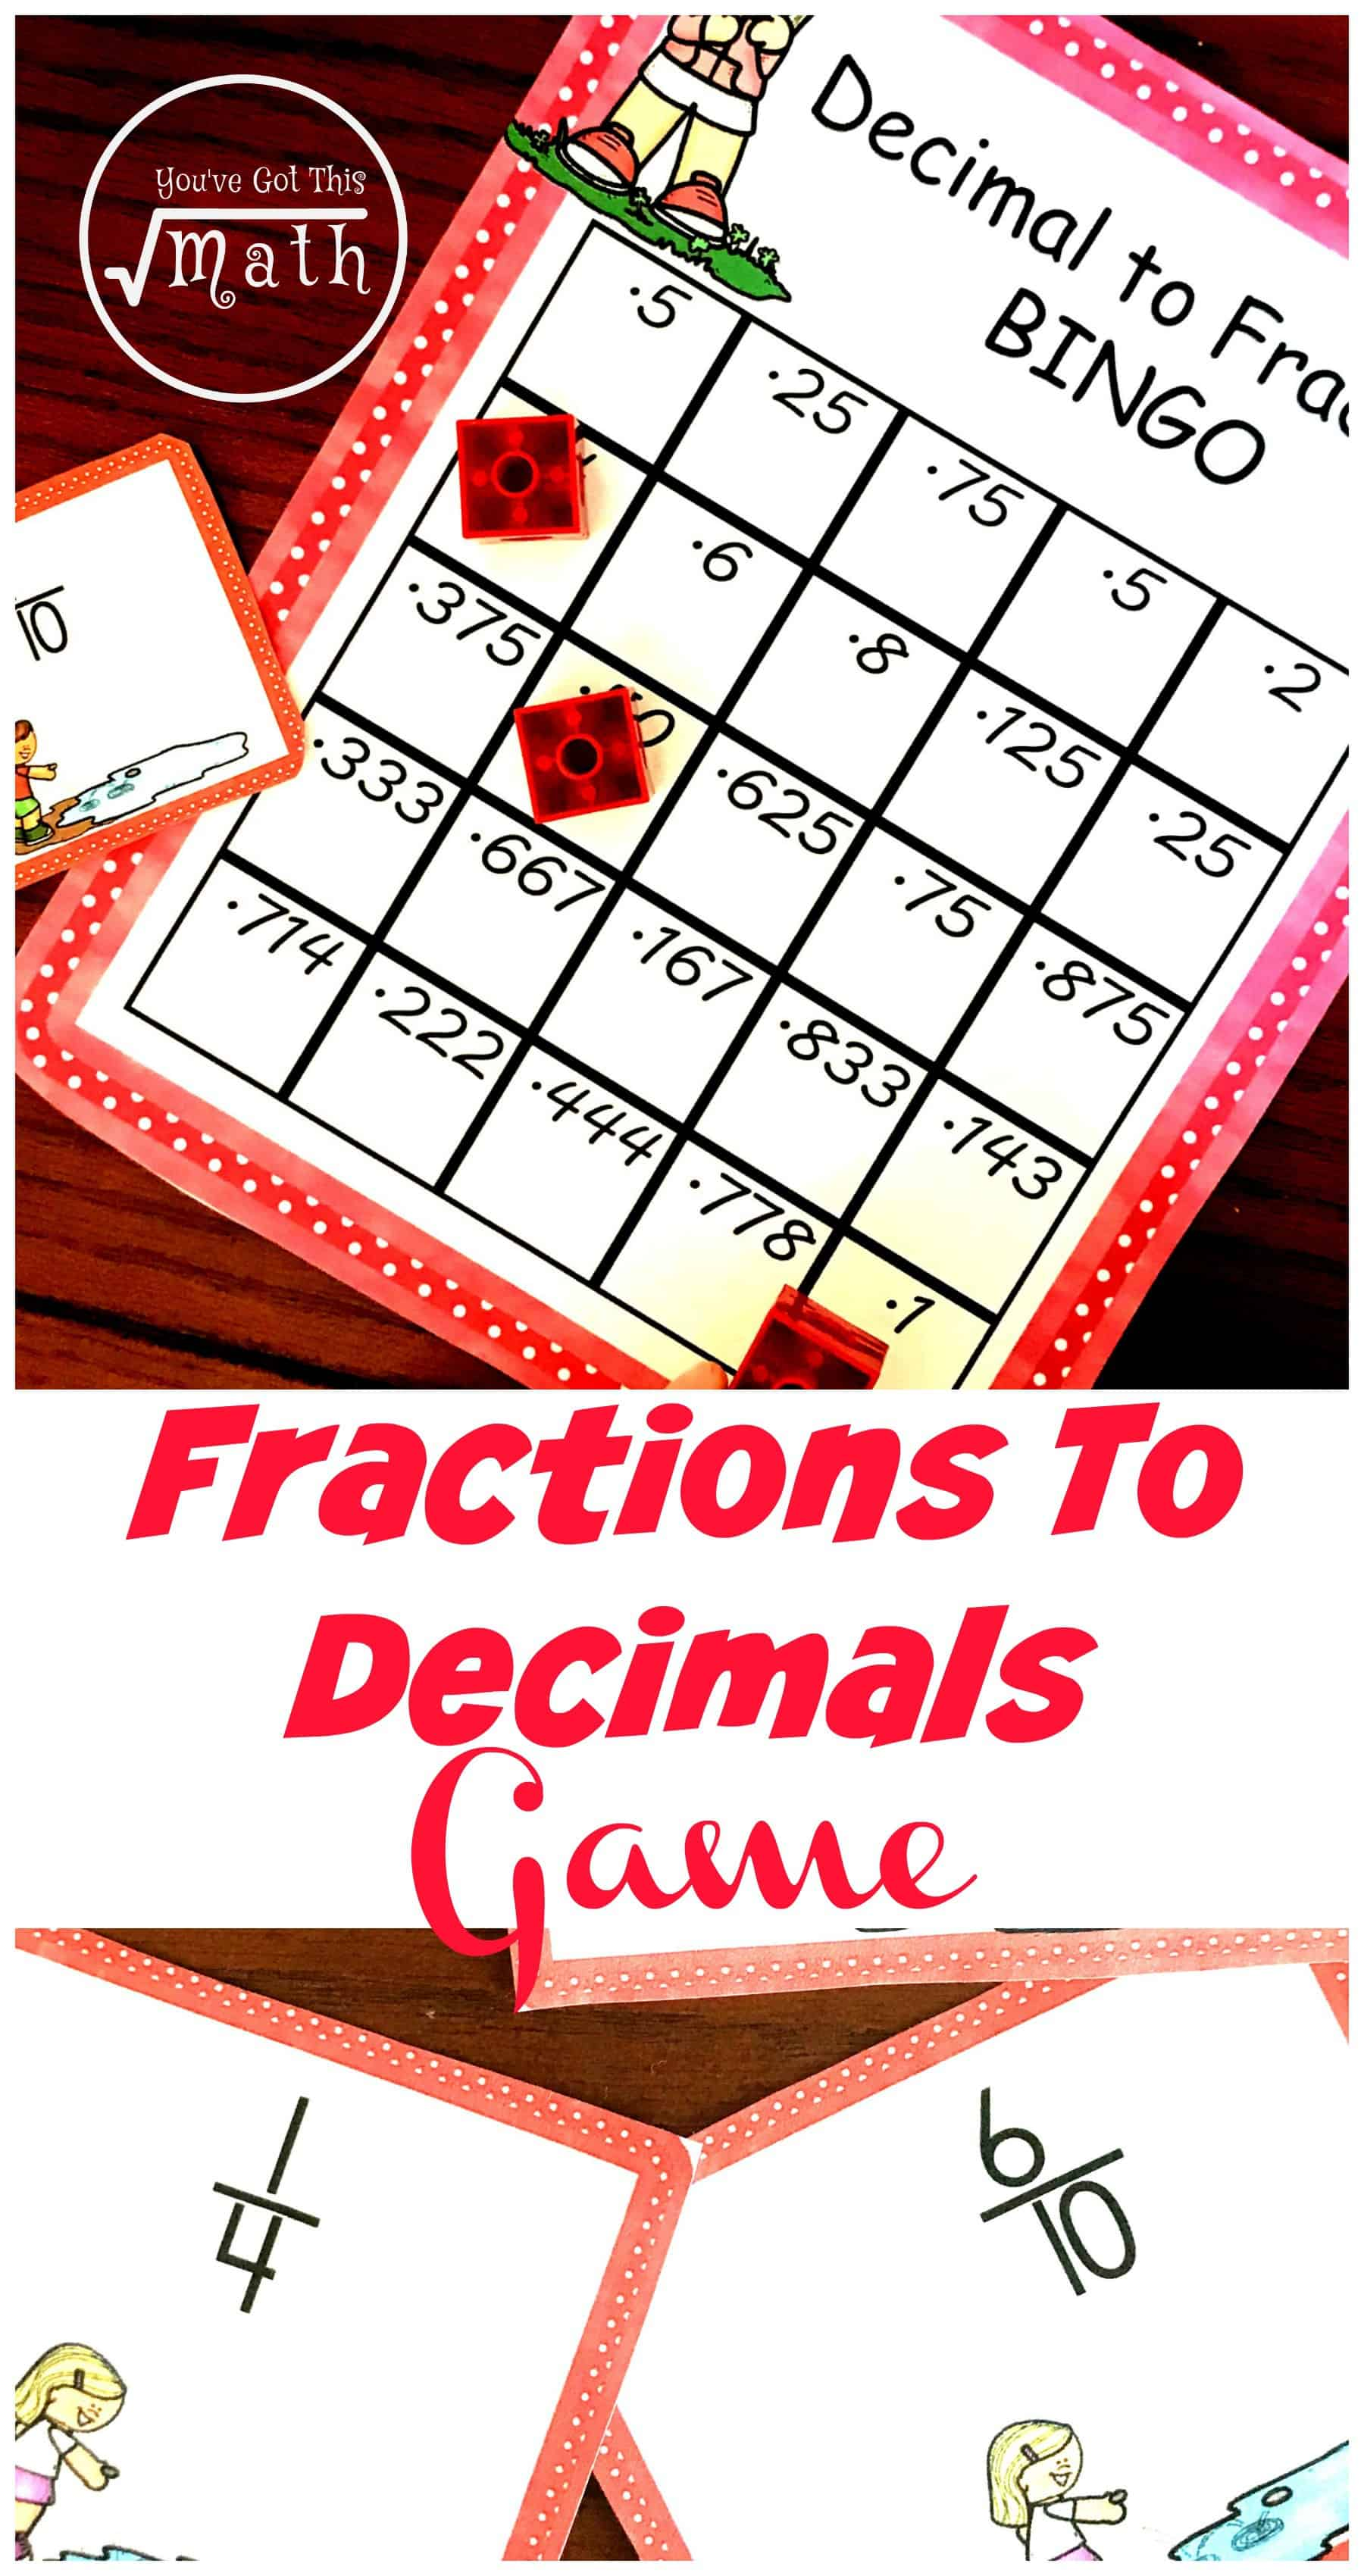 This free fraction to decimal game is a perfect way for children to practice converting fractions like 1/2, 3/4, 4/5, and 5/7 to decimals.